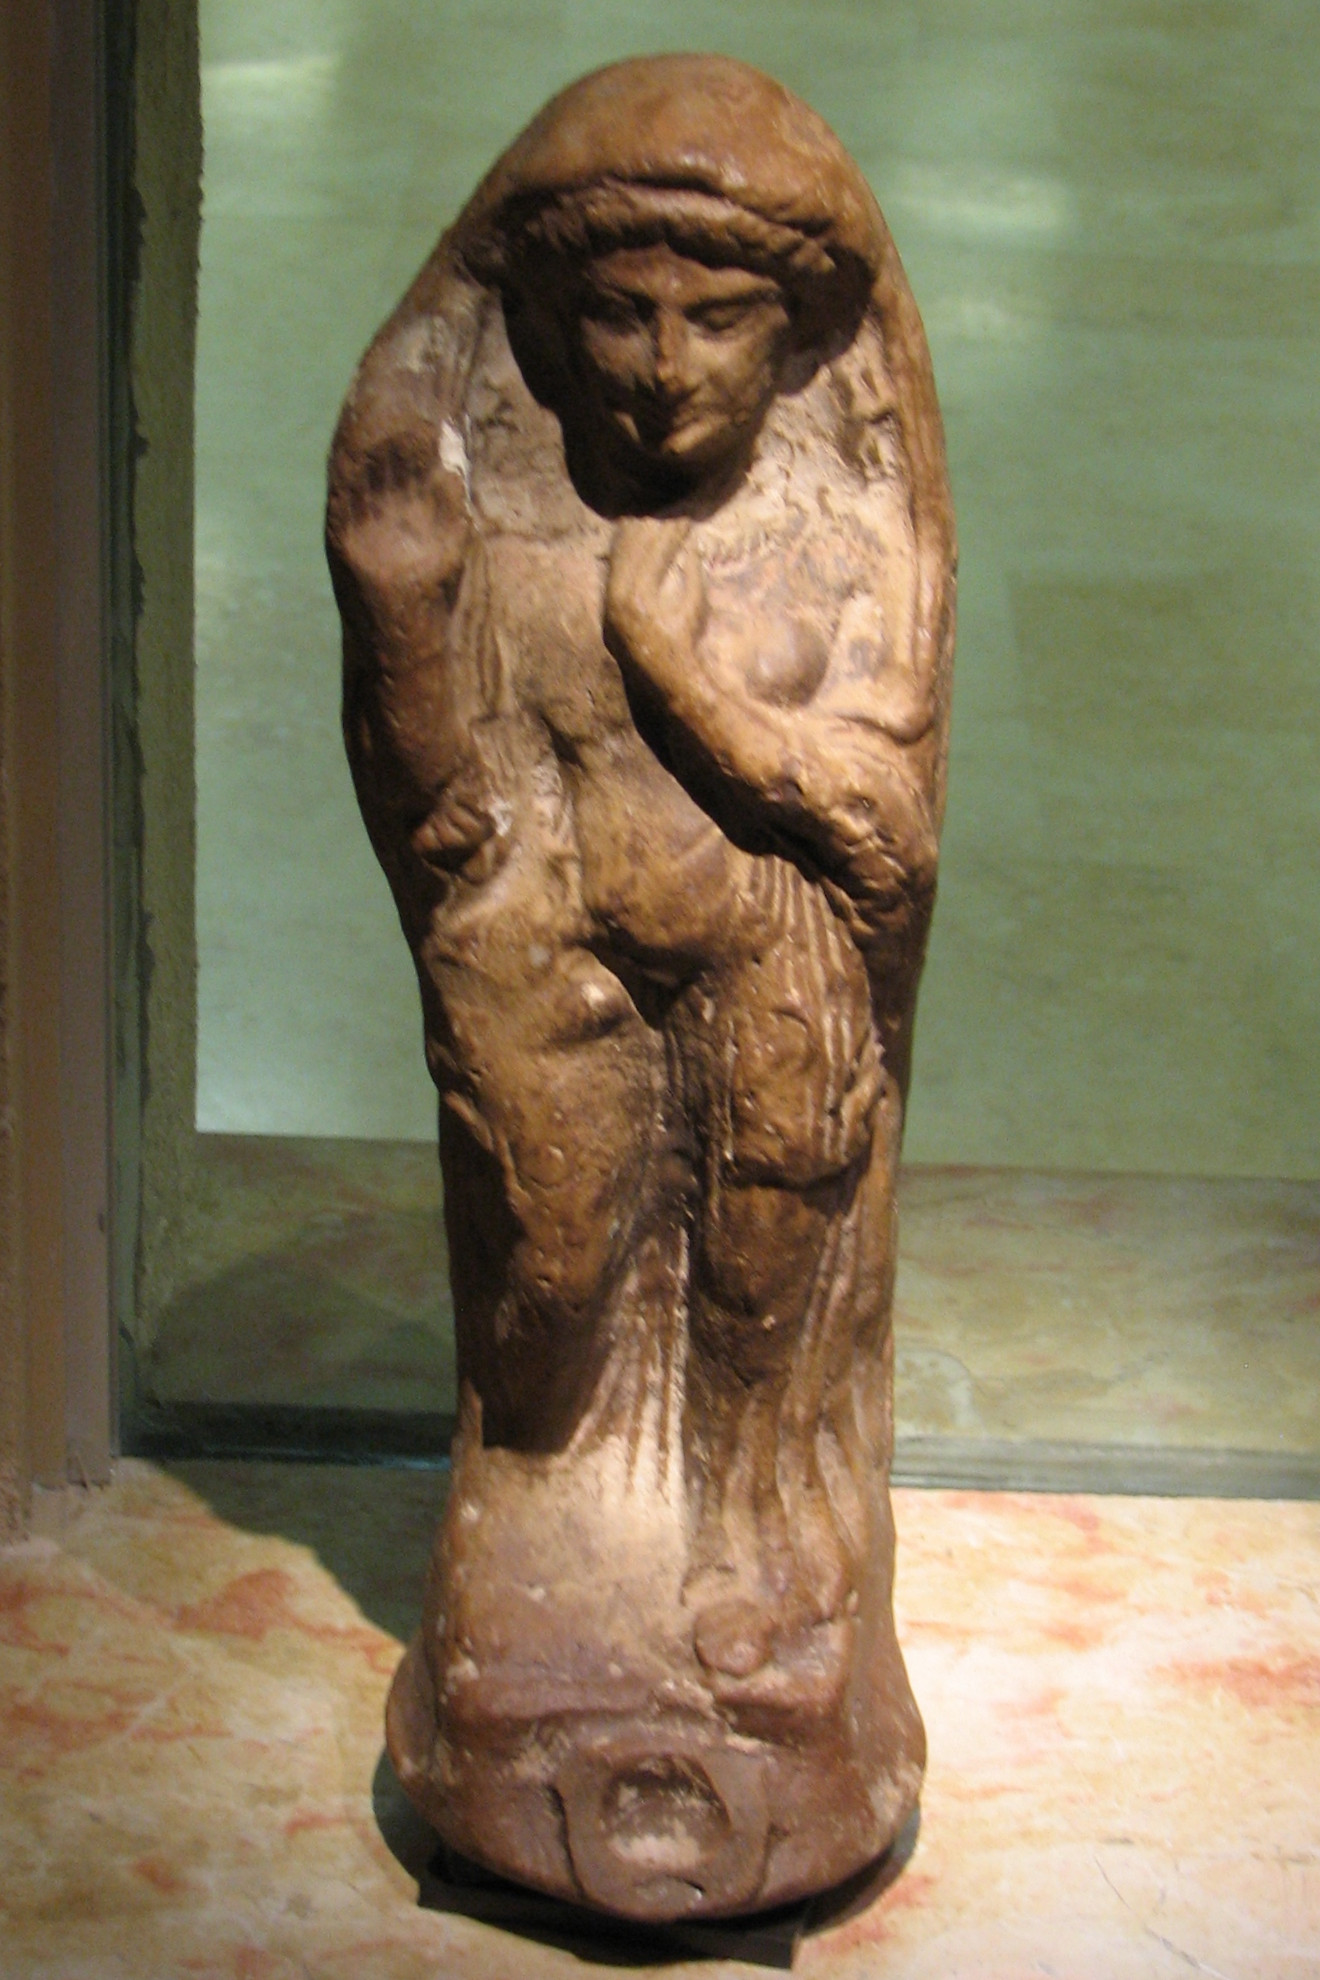 A figurine depicting the goddess Tanit from the Reuben and Edith Hecht Museum in Israel